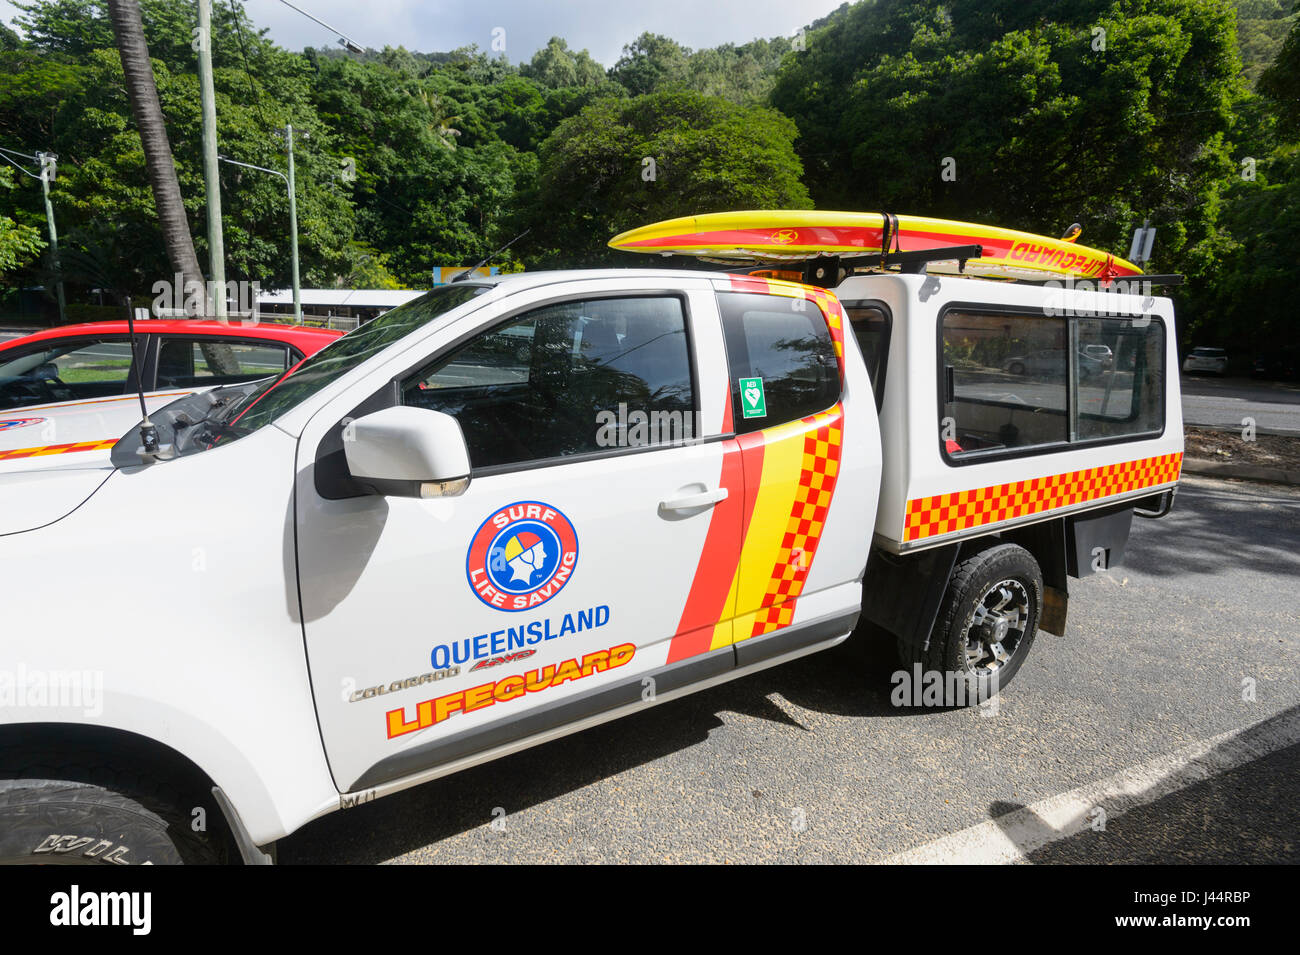 Queensland Lifeguard's truck with surfboard on roof parked at Ellis Beach, Far North Queensland, FNQ, Australia - Stock Image